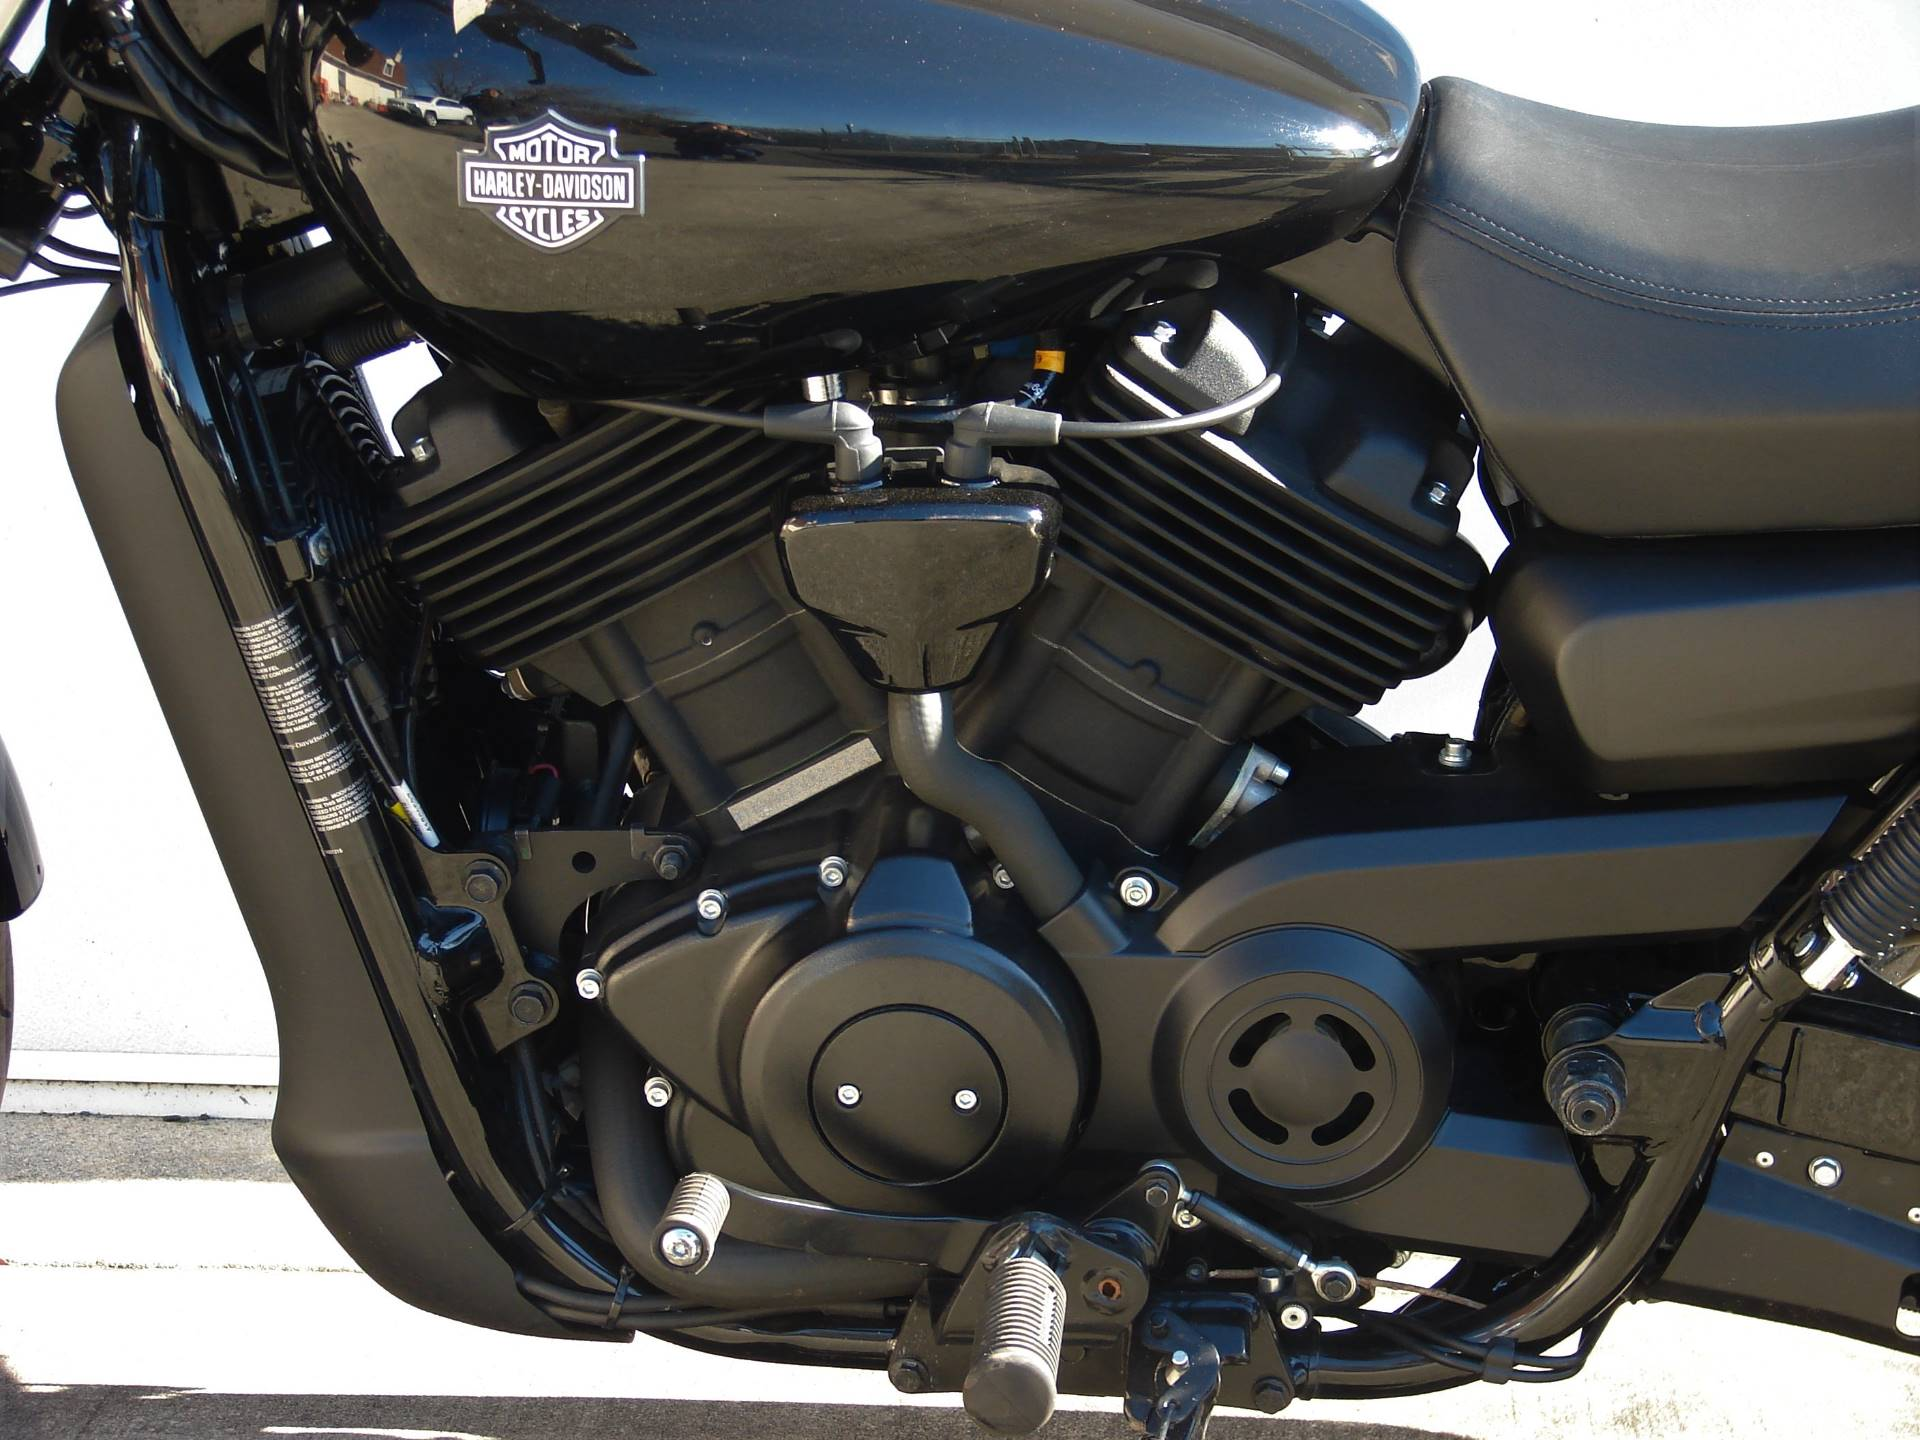 2017 Harley-Davidson XG500 Street Motorcycle in Williamstown, New Jersey - Photo 6